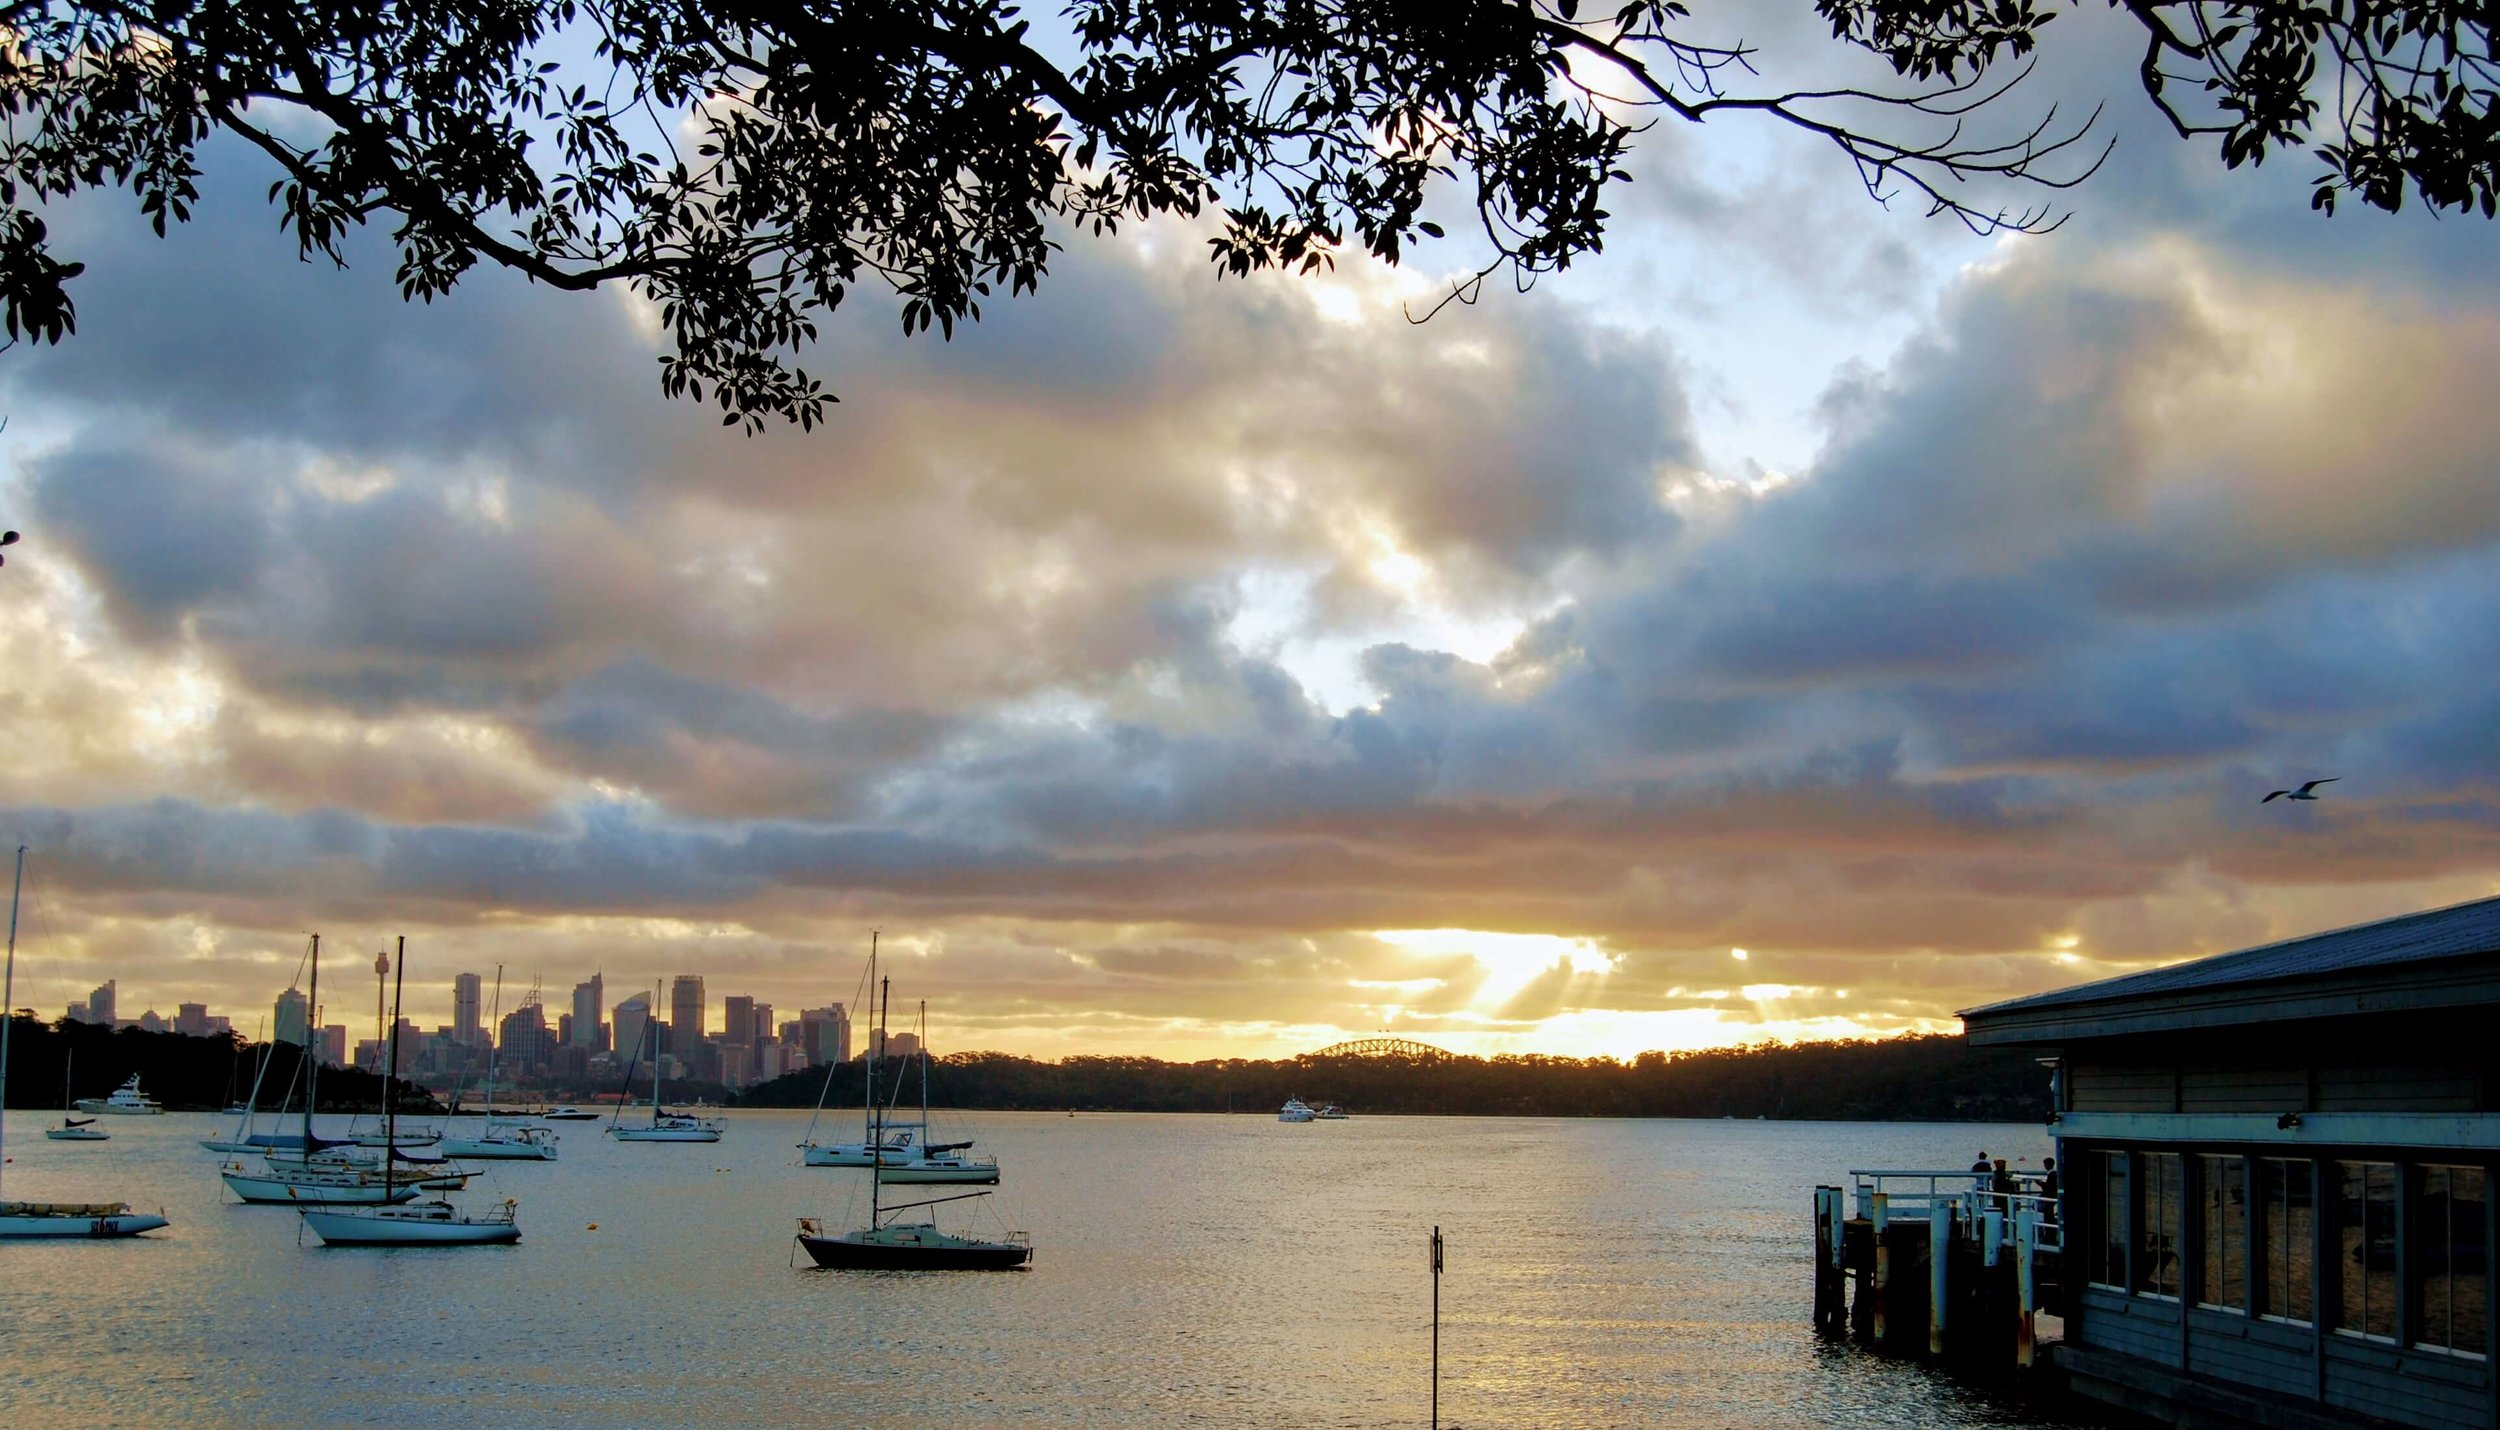 The sunset over Sydney behind the ferry wharf at Watsons Bay